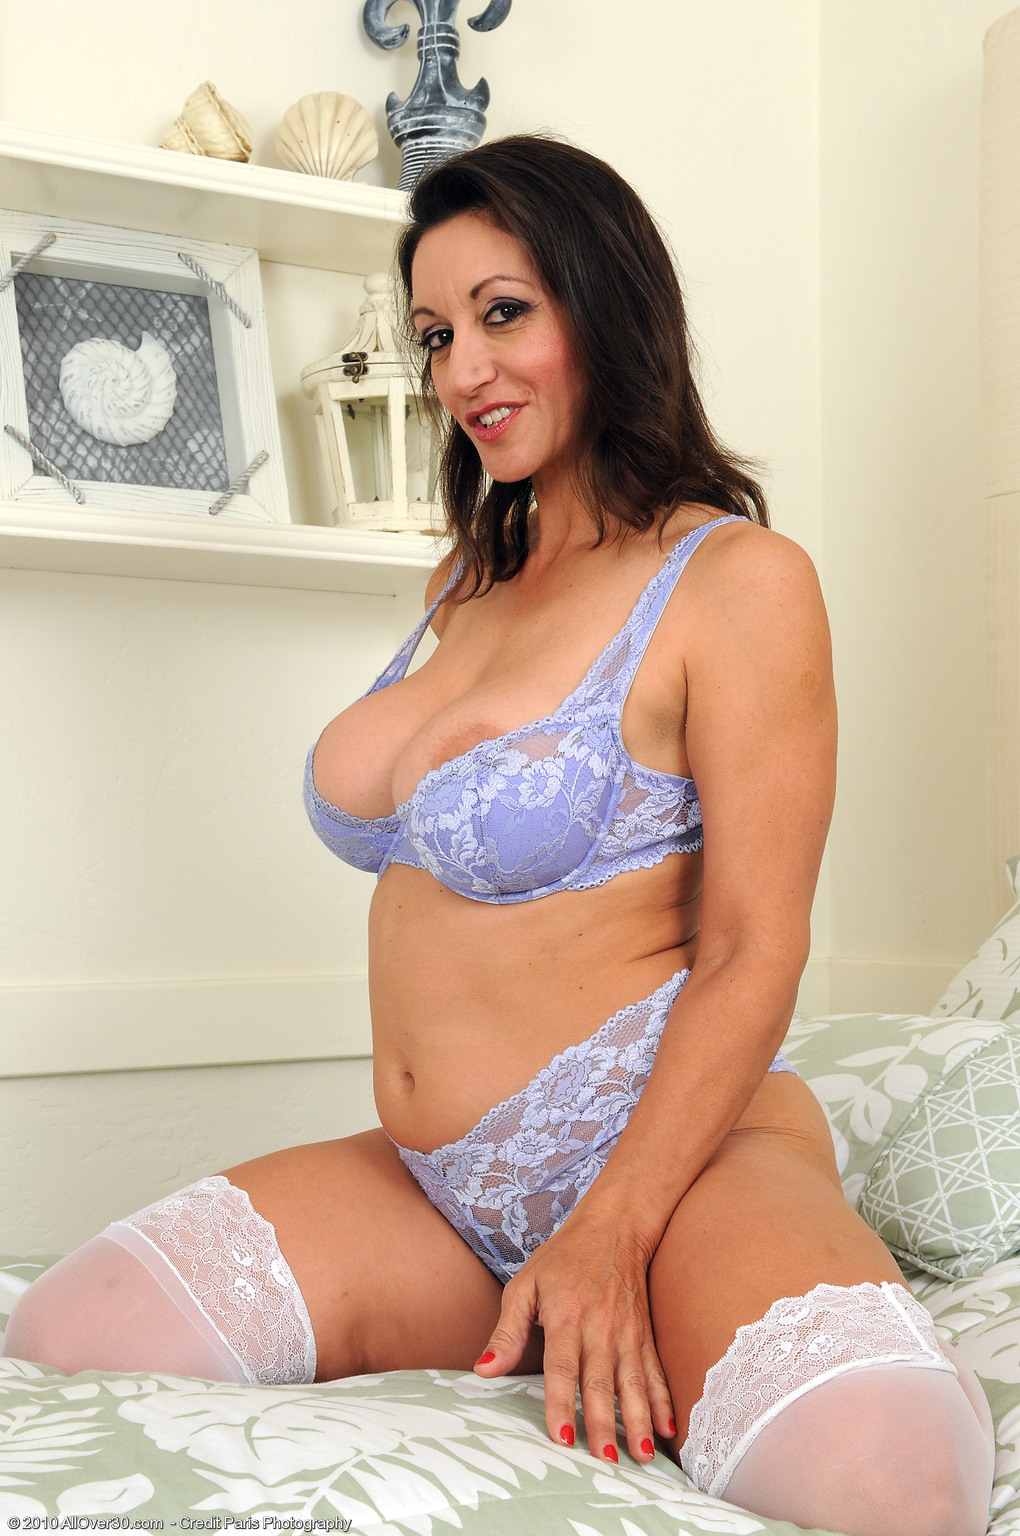 Persia Monir Blue Lingerie at AllOver30 Free